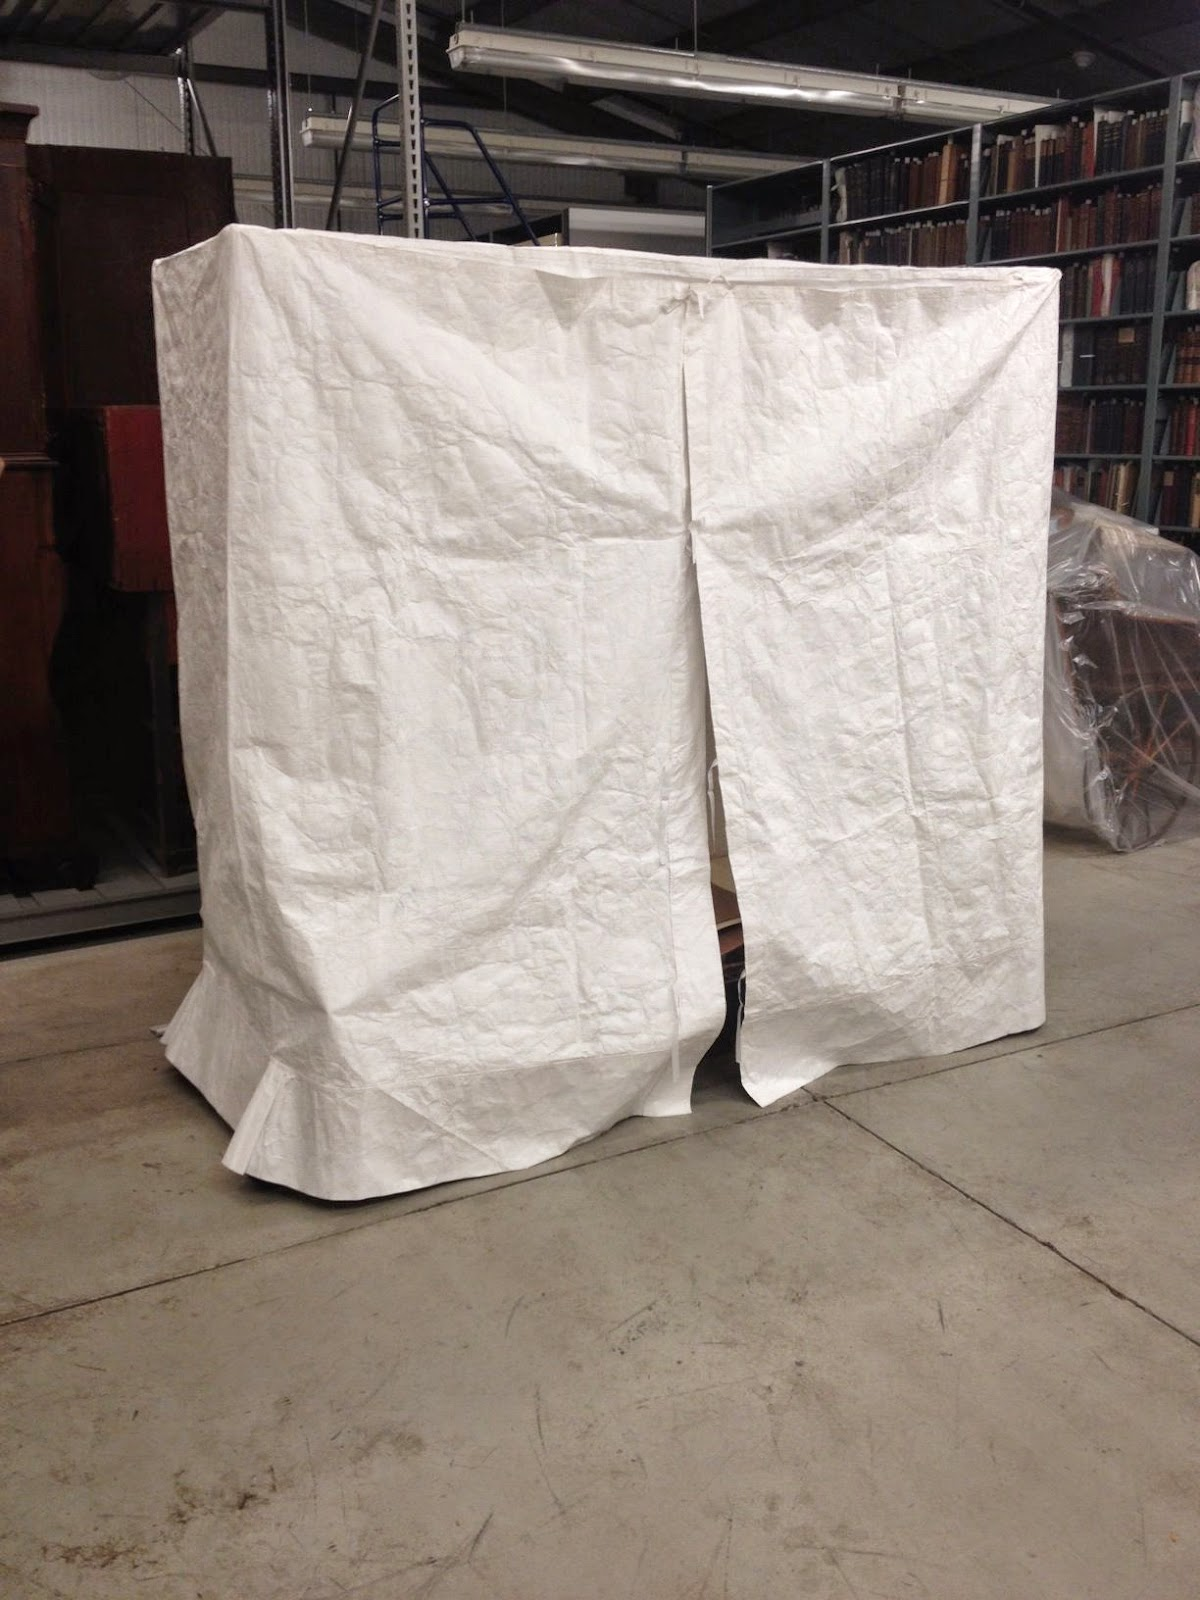 Custom made tyvek dust cover, created and designed by Gwen Spicer of Spicer Art Conservation, New York